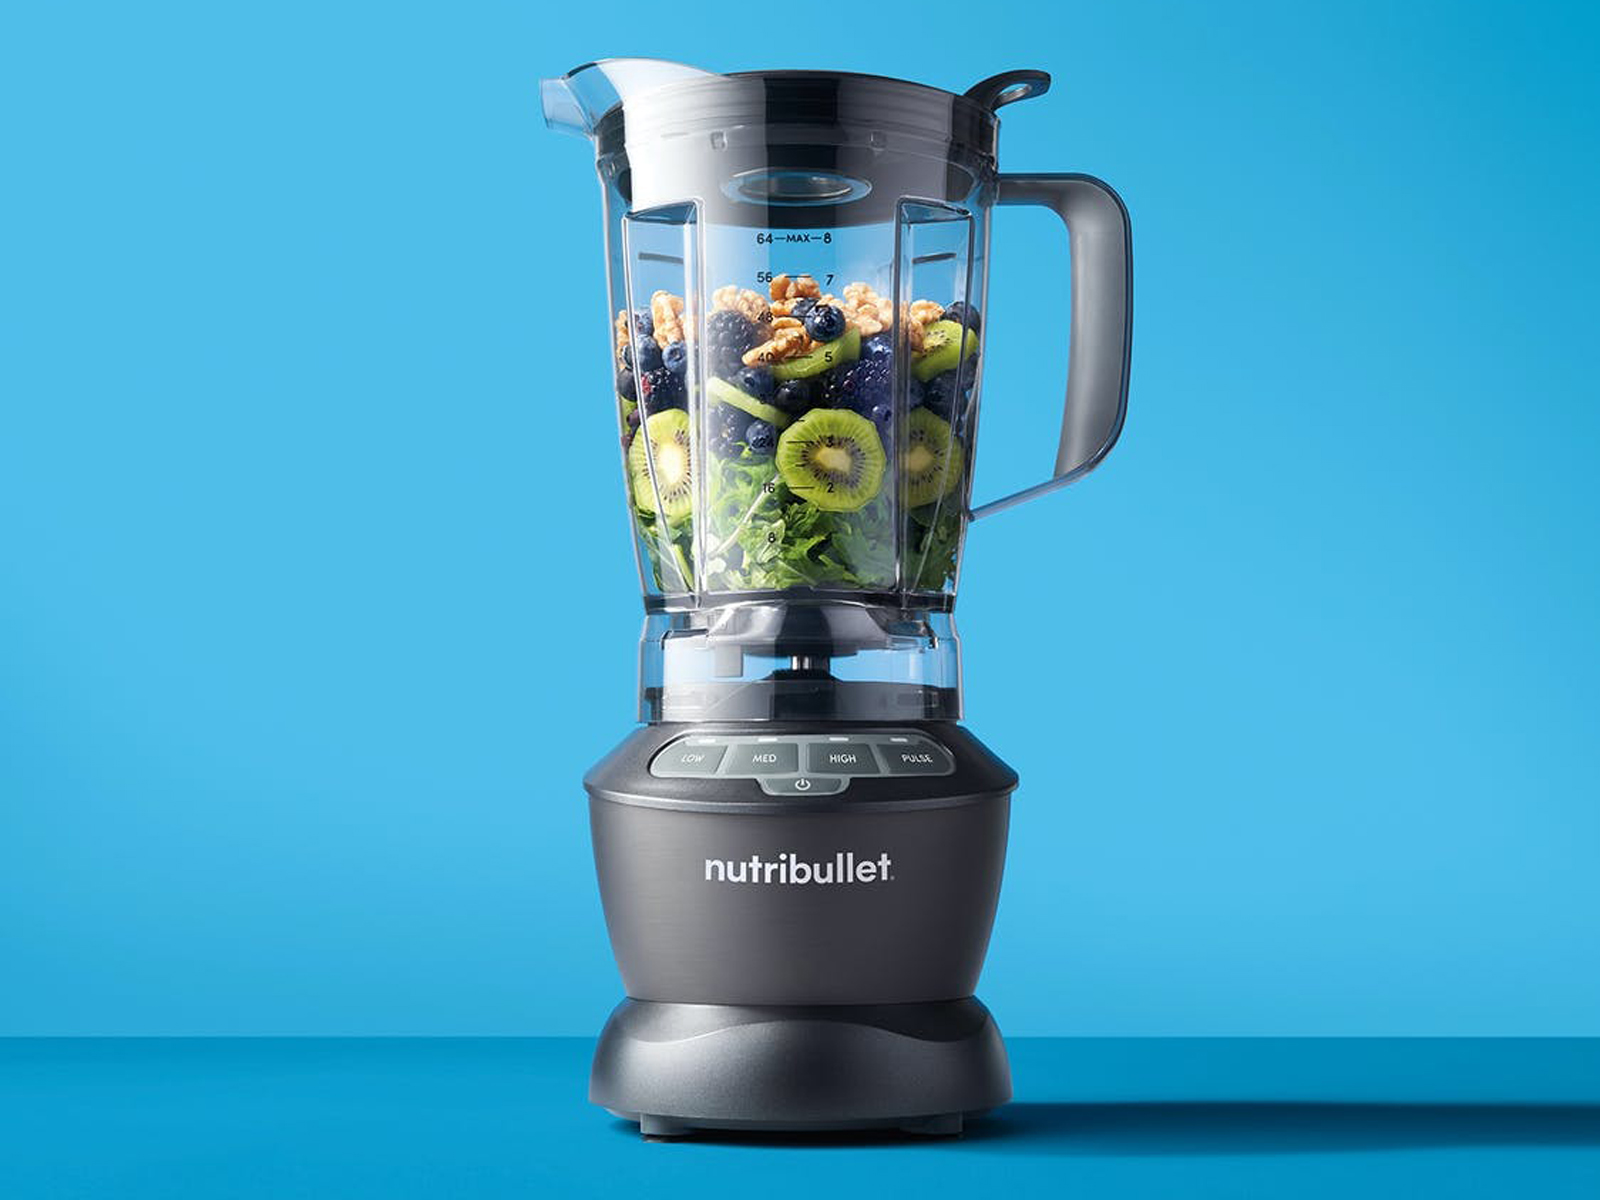 Nutribullet full size blender